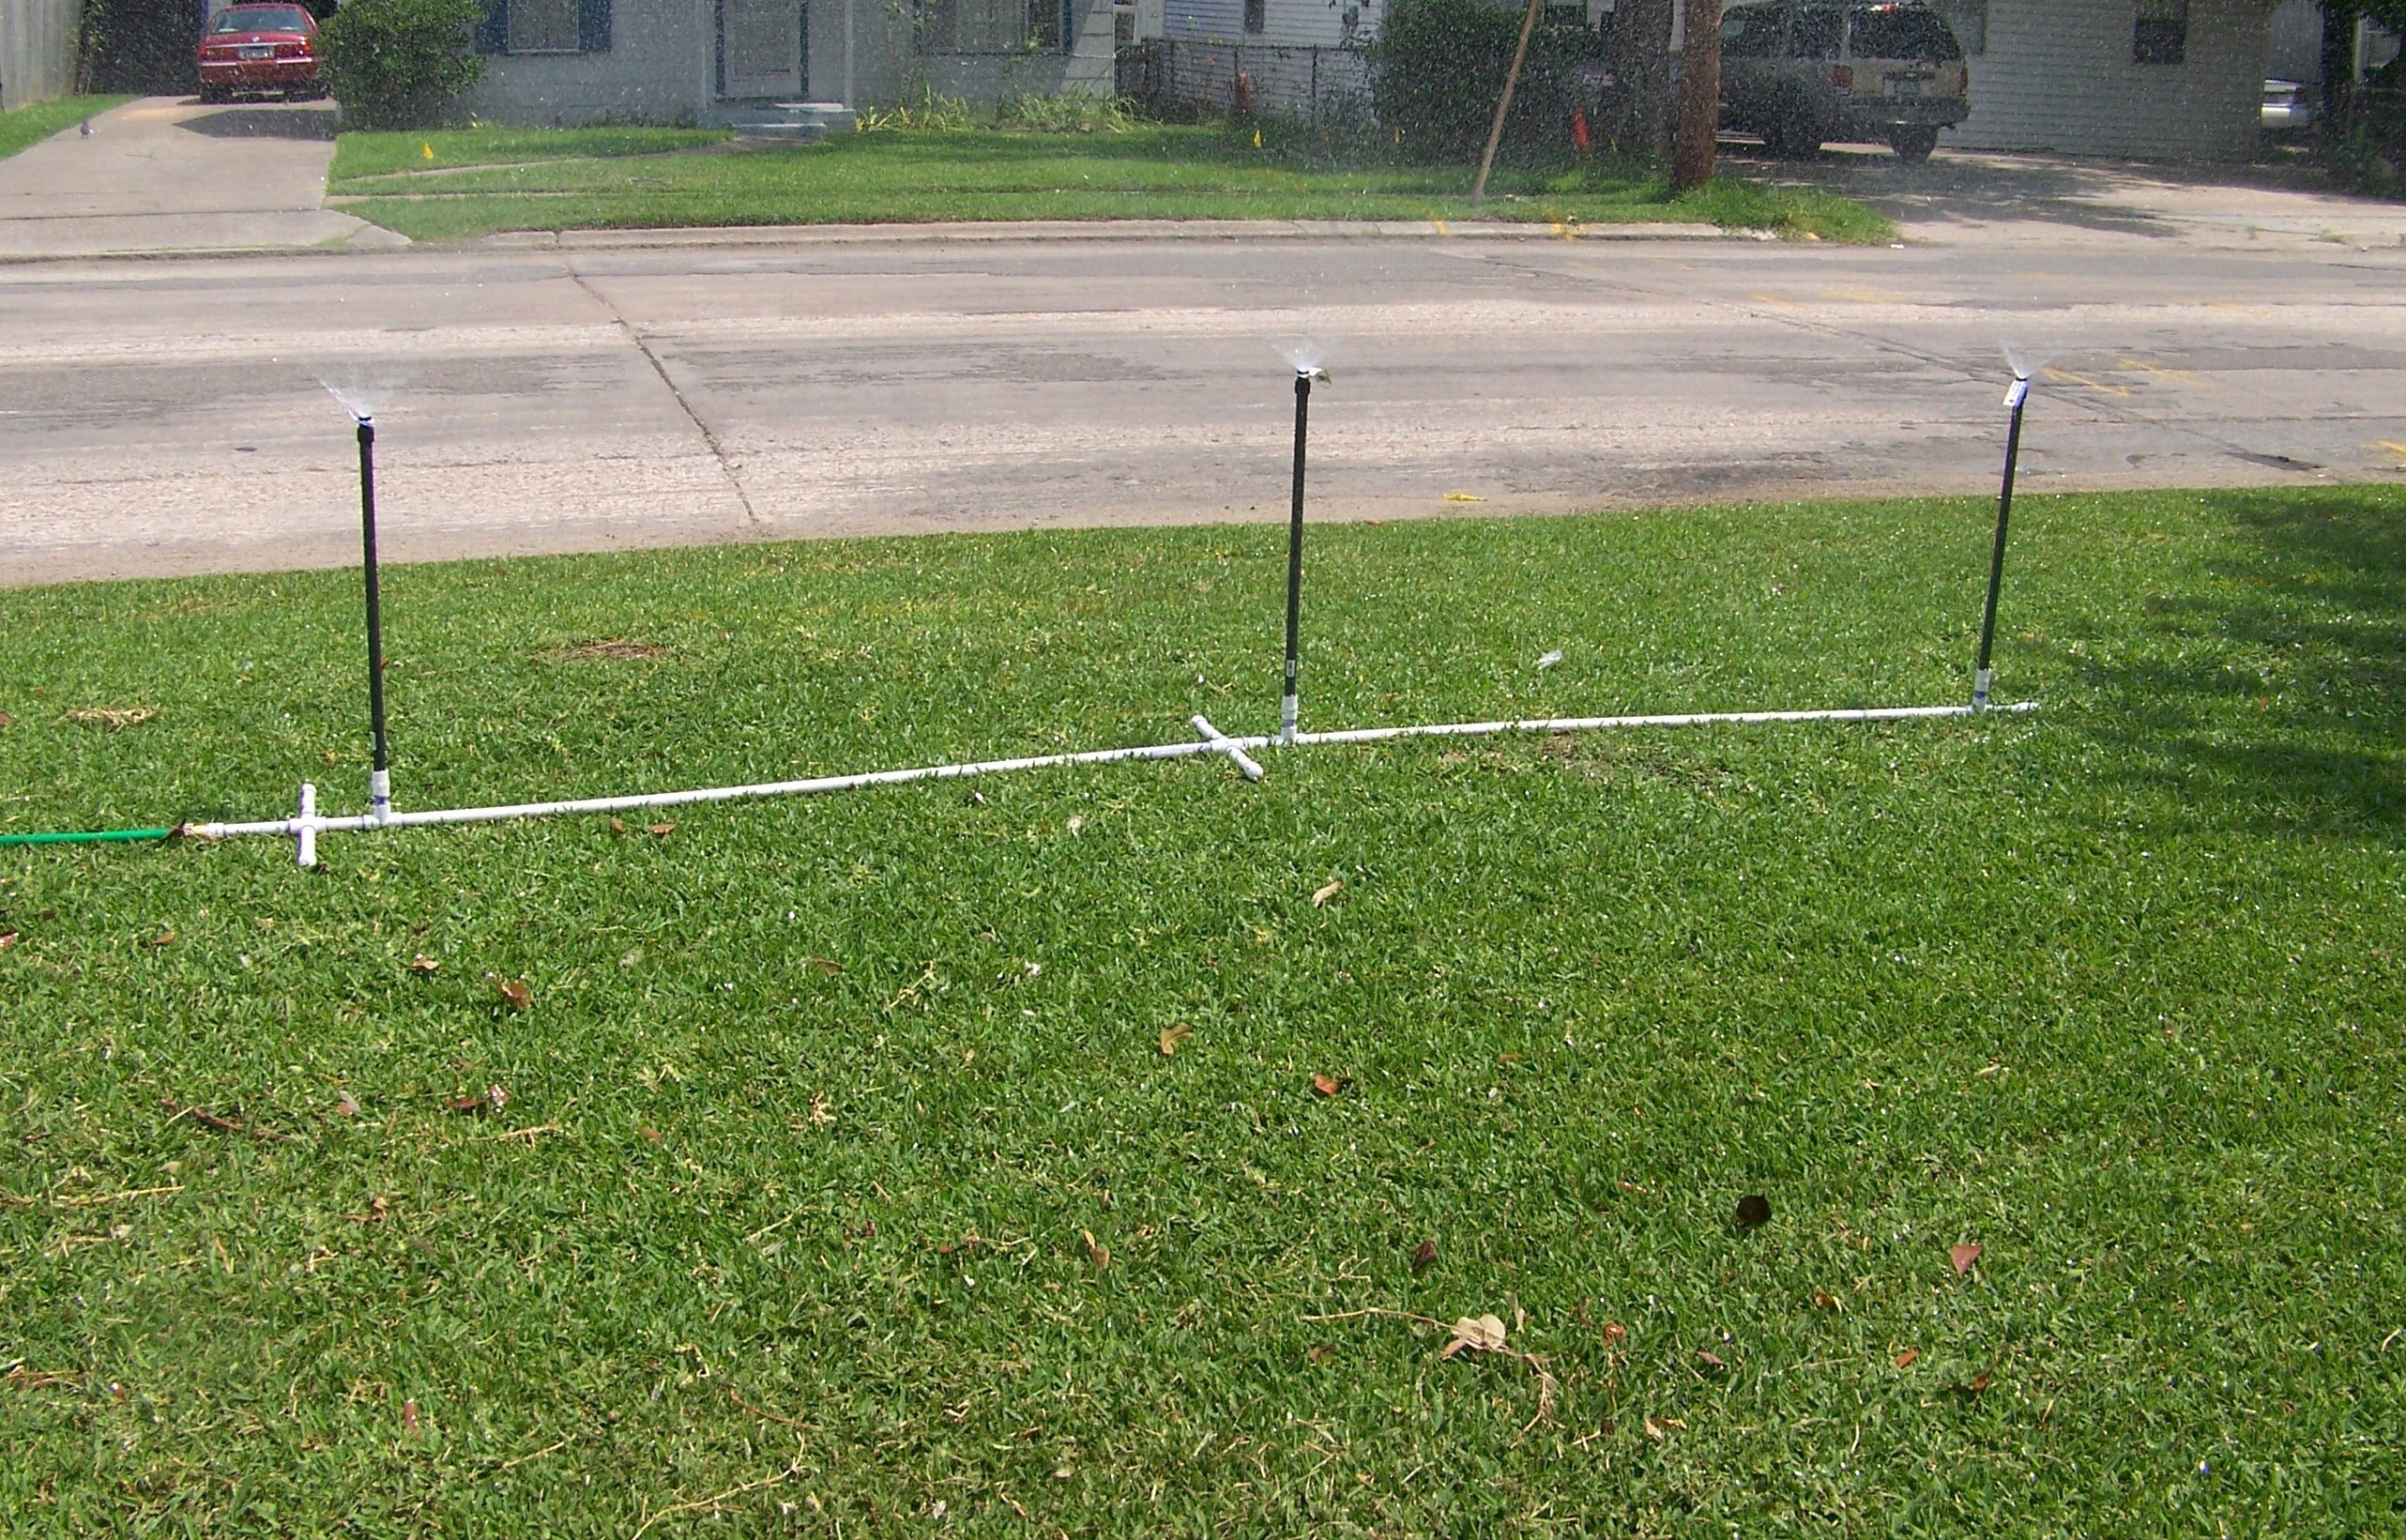 Inexpensive And Portable Sprinkler System 4 Steps Instructables